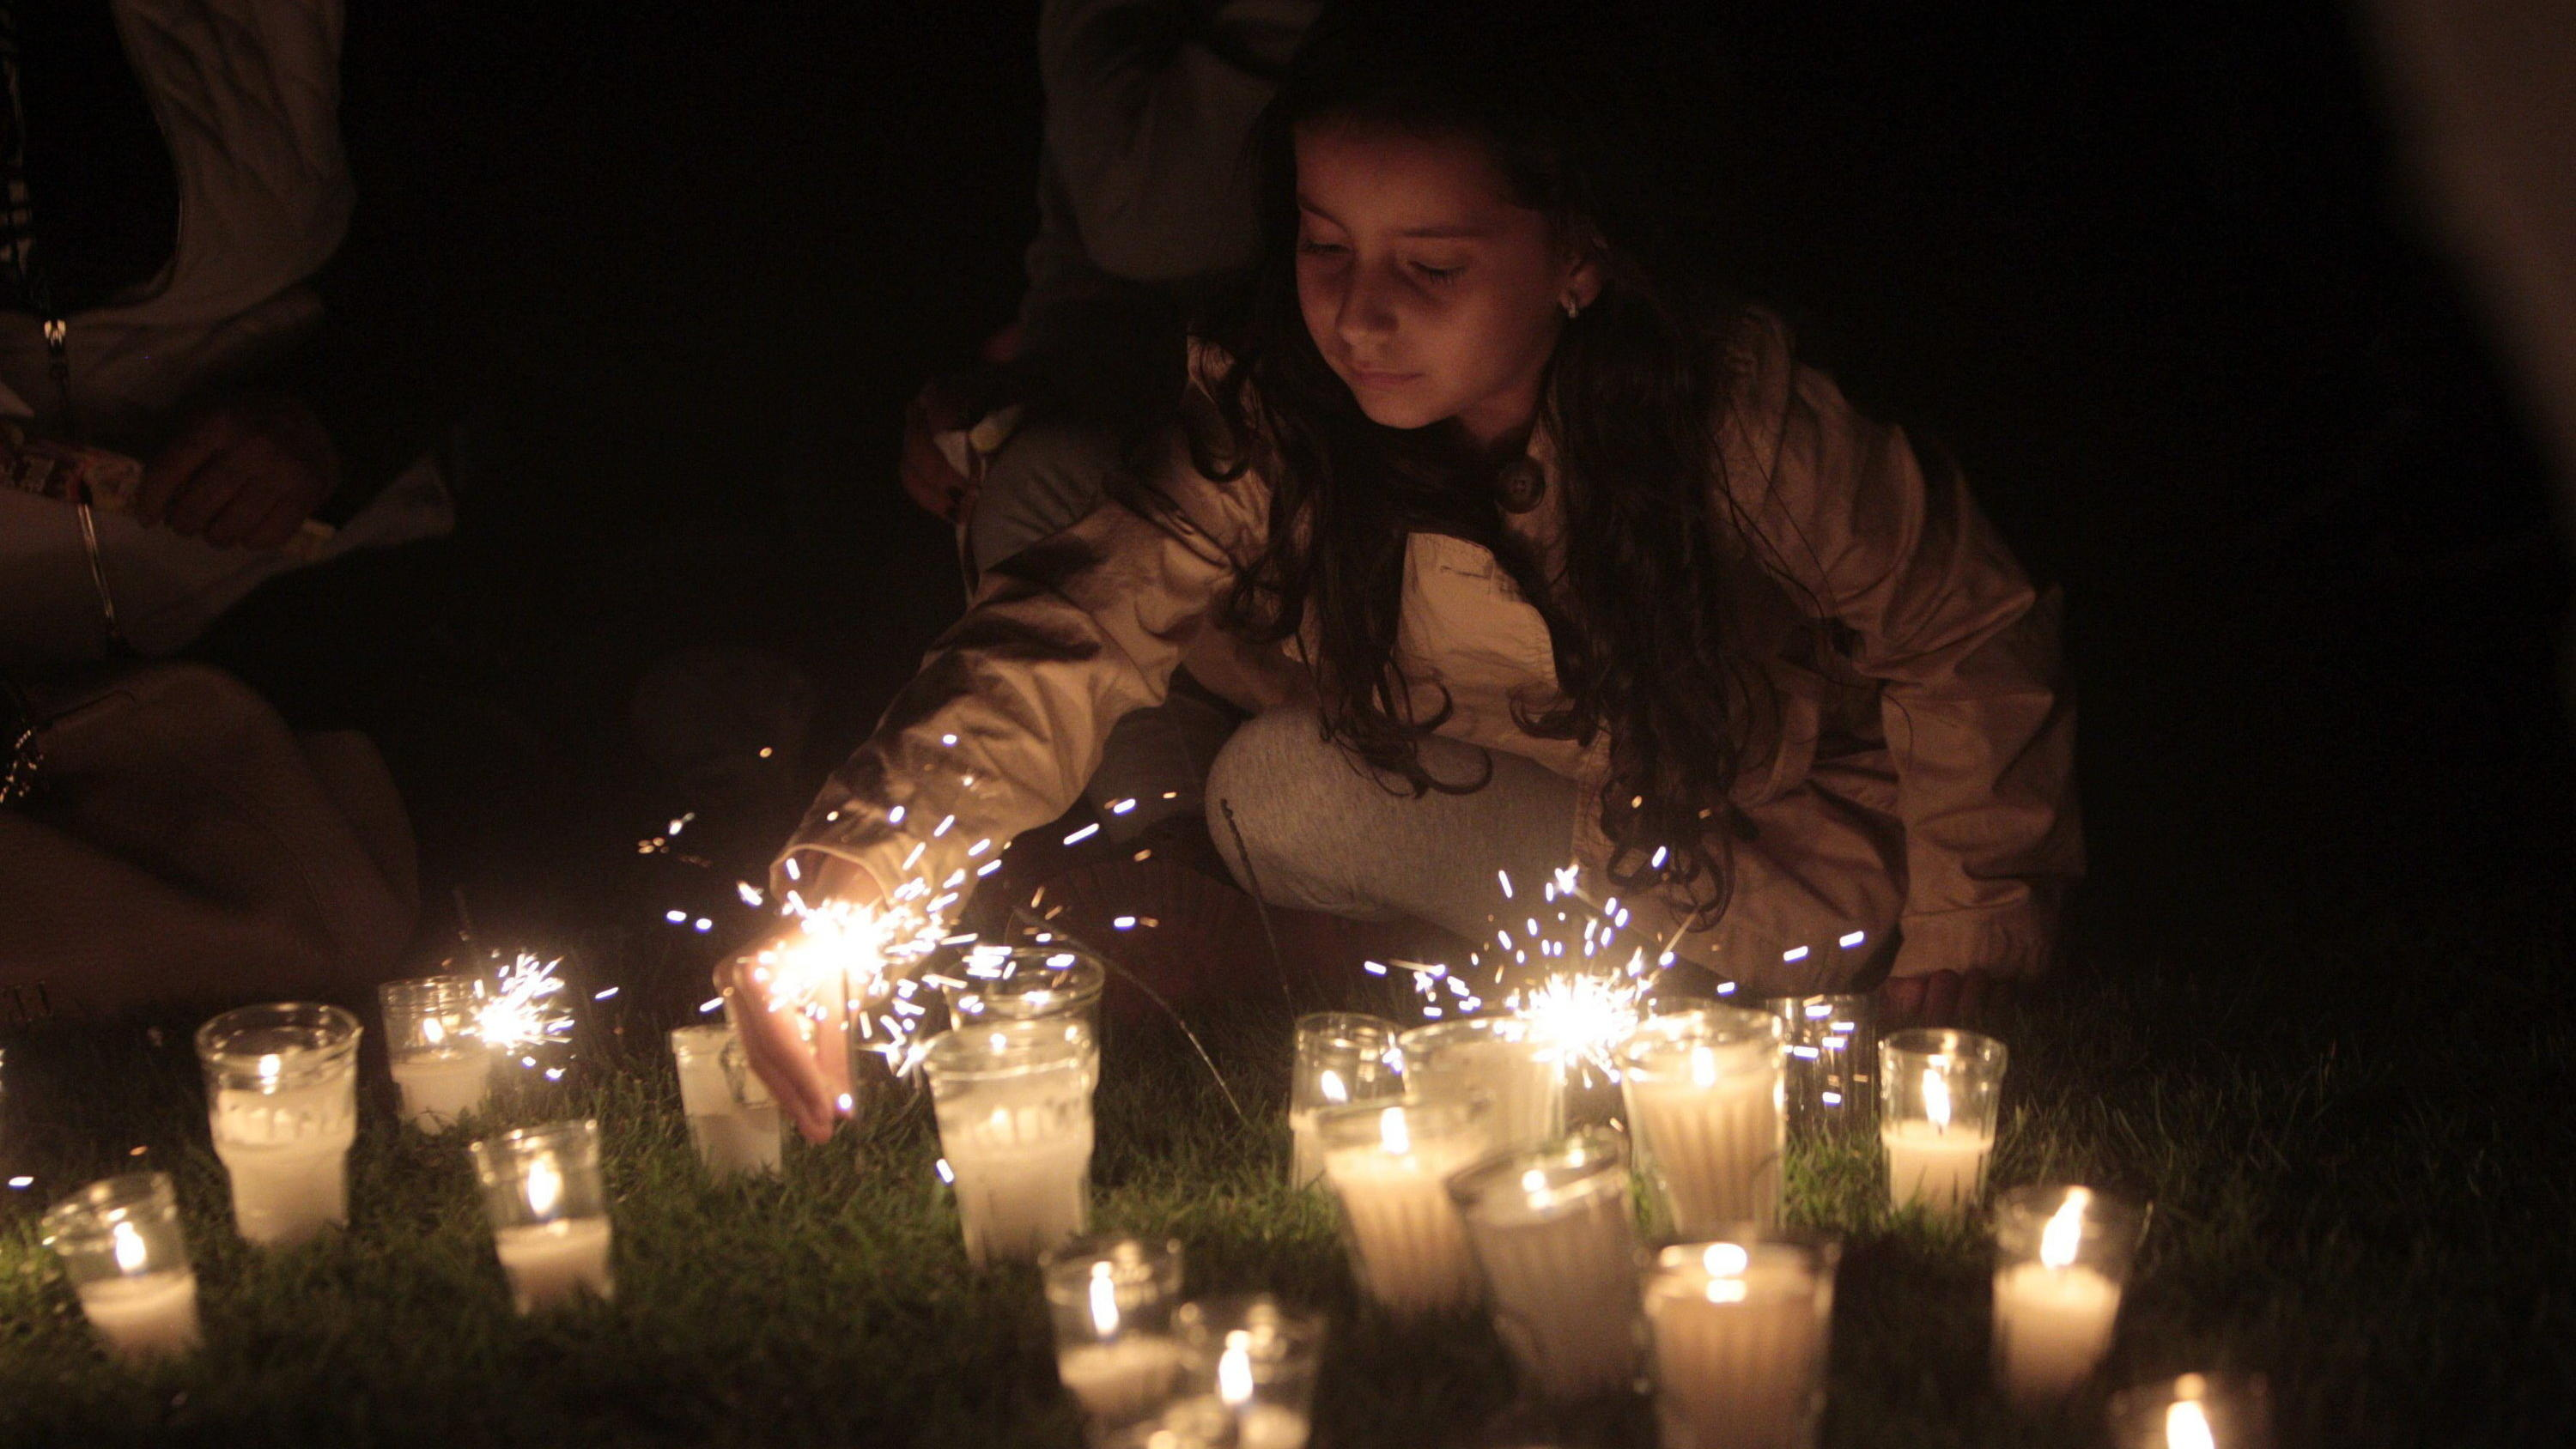 epa04684748 A girl places a candle during the 'Earth Hour' event in Guatemala City, Guatemala, 28 March 2015. Earth Hour takes place worldwide at 8.30 pm local time and is a global call to turn off lights for 60 minutes to raise awareness of the dang